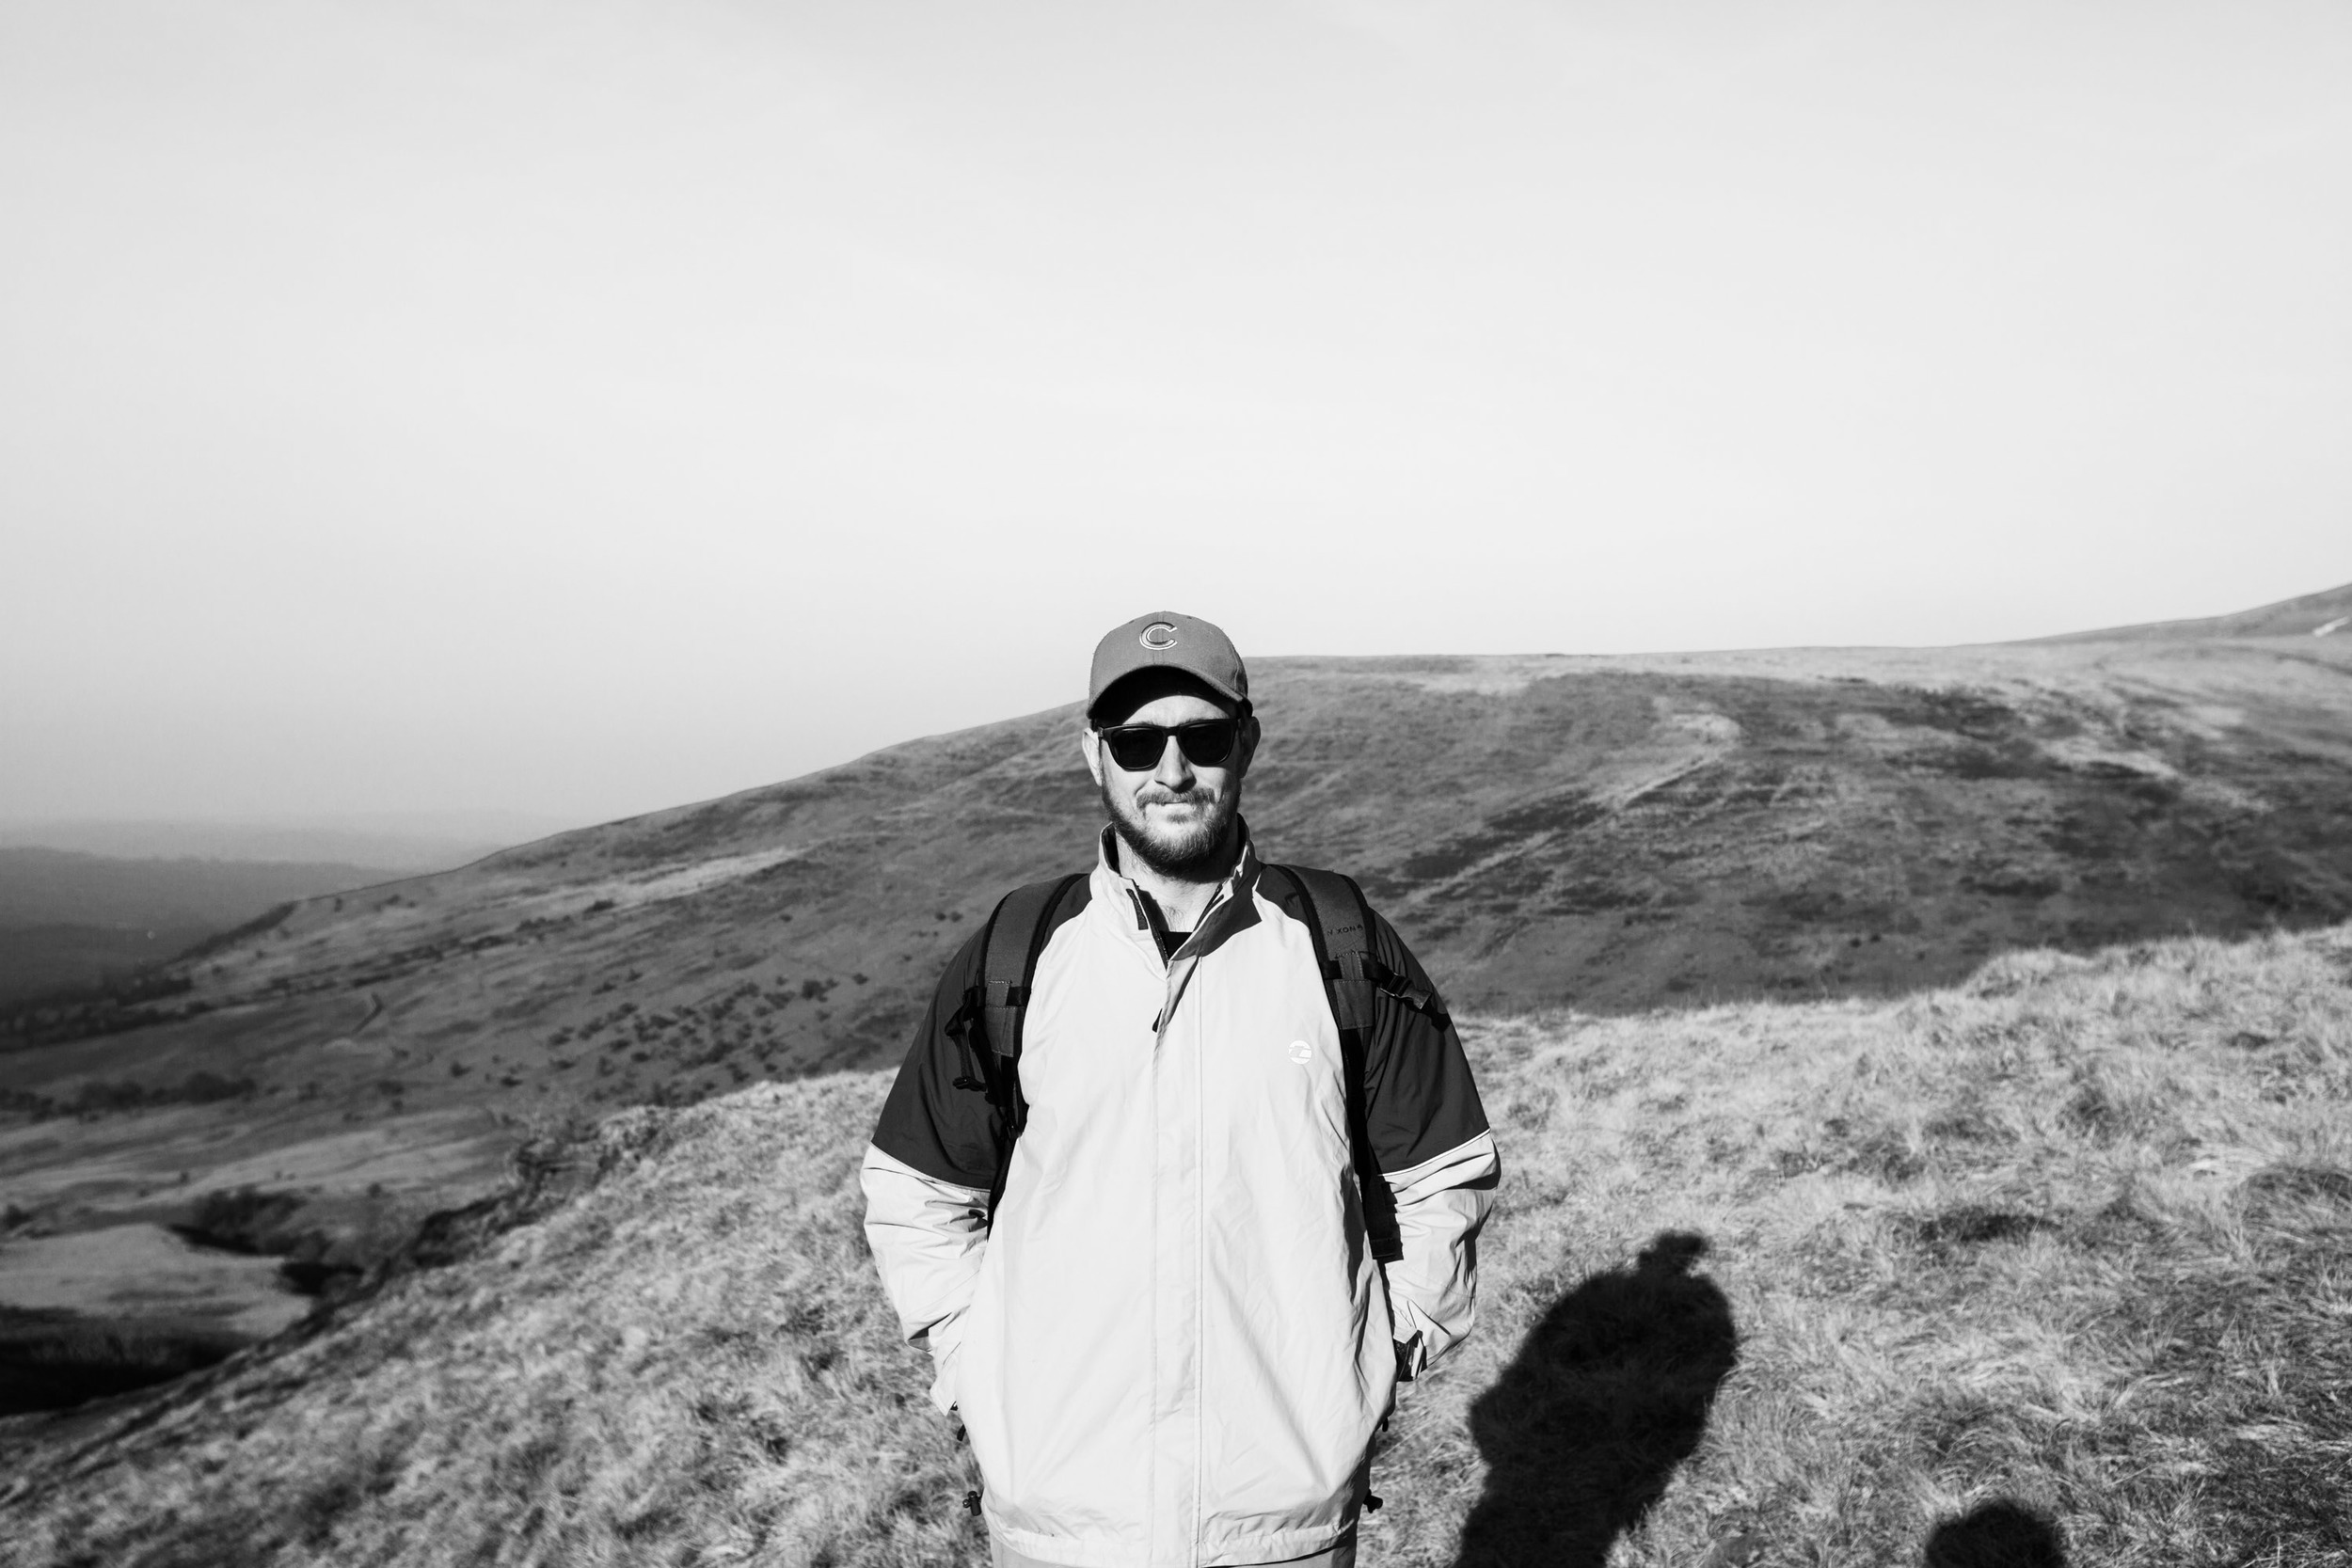 This is me up a mountain, doing a bit of research for a planned shoot.